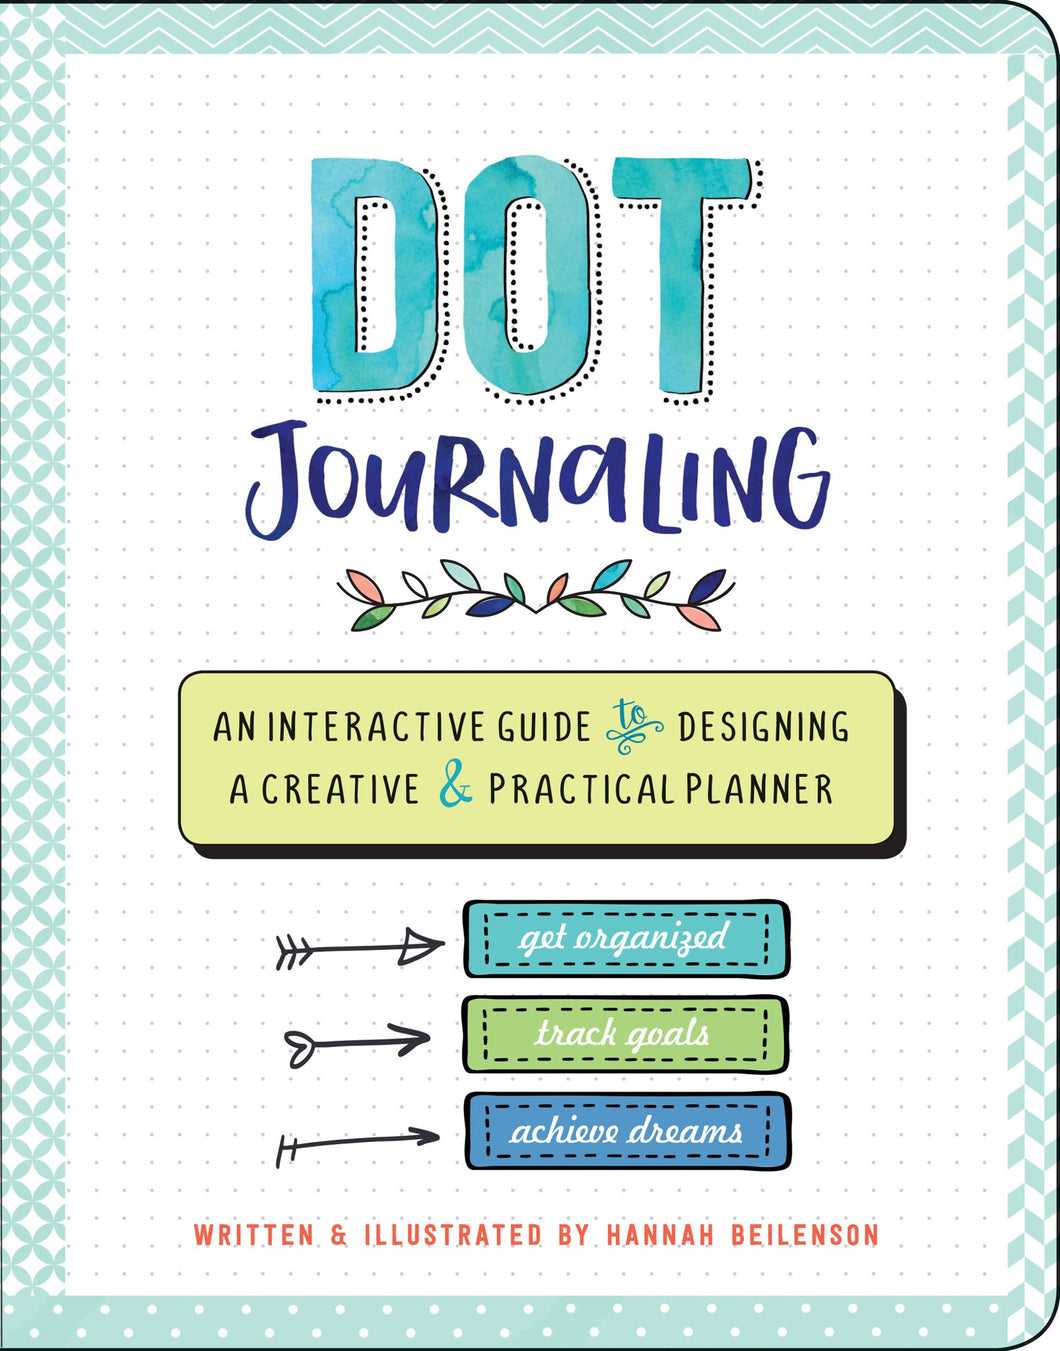 Dot Journaling: An Interactive Guide to Designing A Creative & Practical Planner Hardcover – 1 January 2020 by Peter Pauper Press (Author)